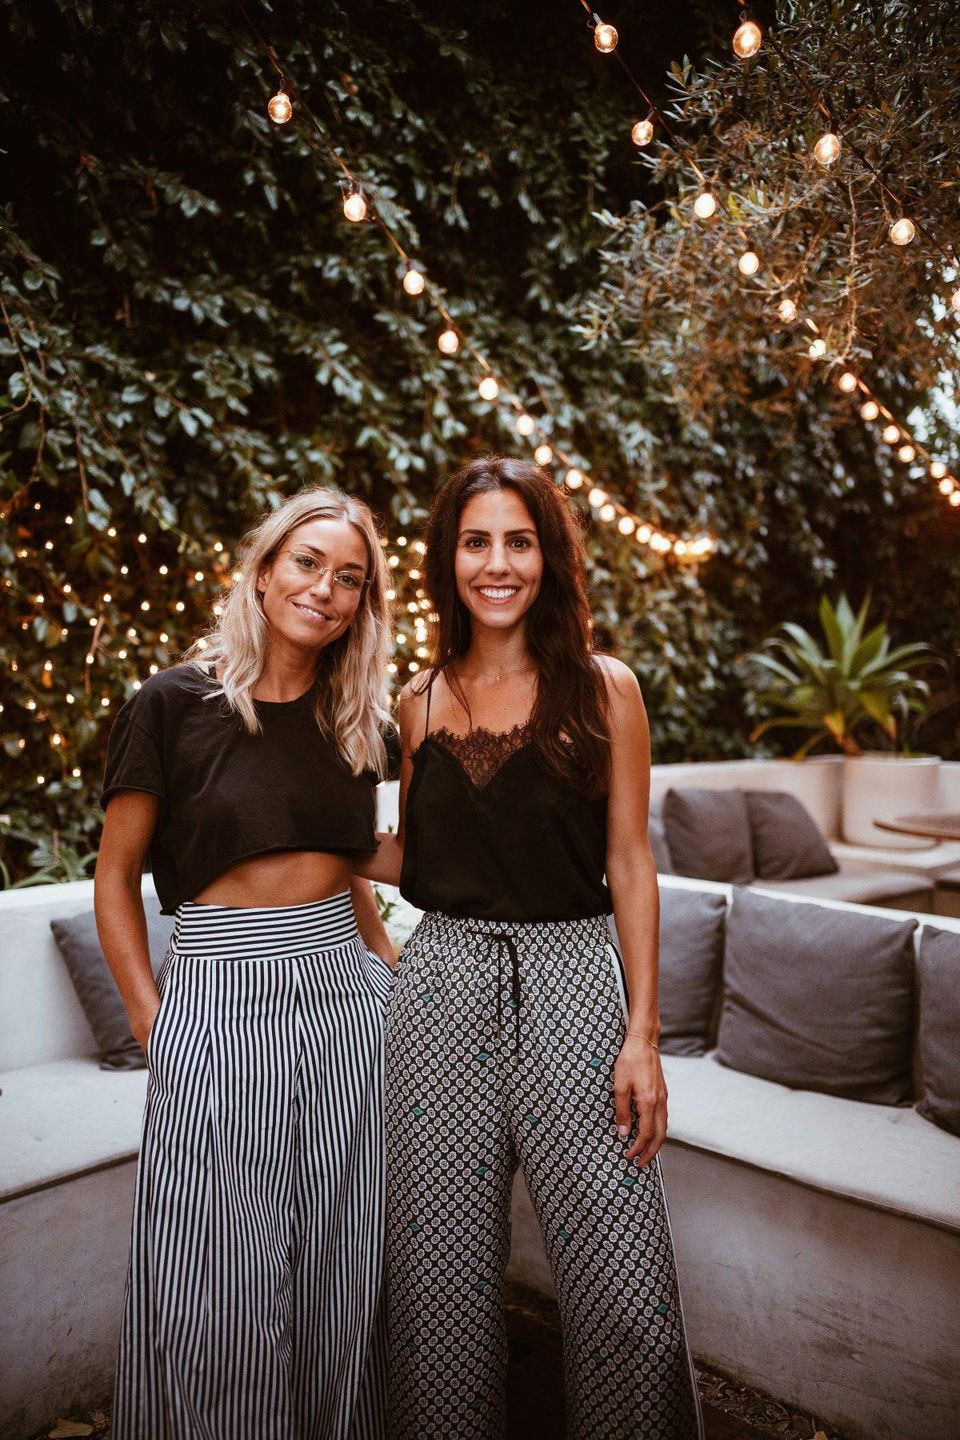 Anna Duckworth (left) and Kate Miller's Miss Grass aims to embrace and demystify cannabis. - SUBMITTED